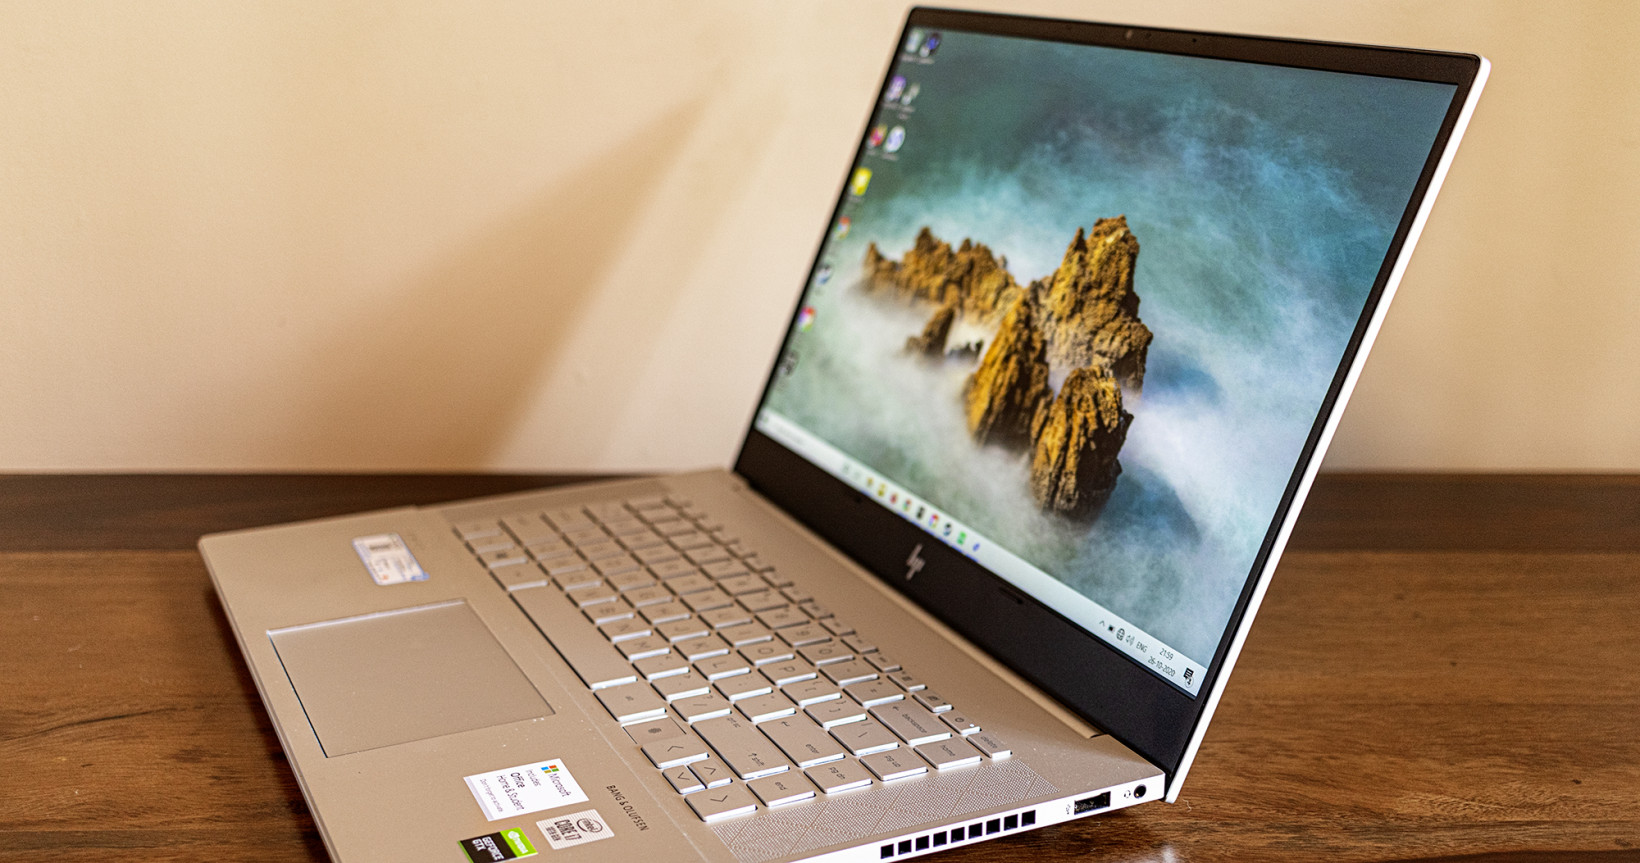 HP Envy 15 review: A powerful content creator's laptop without the bulk